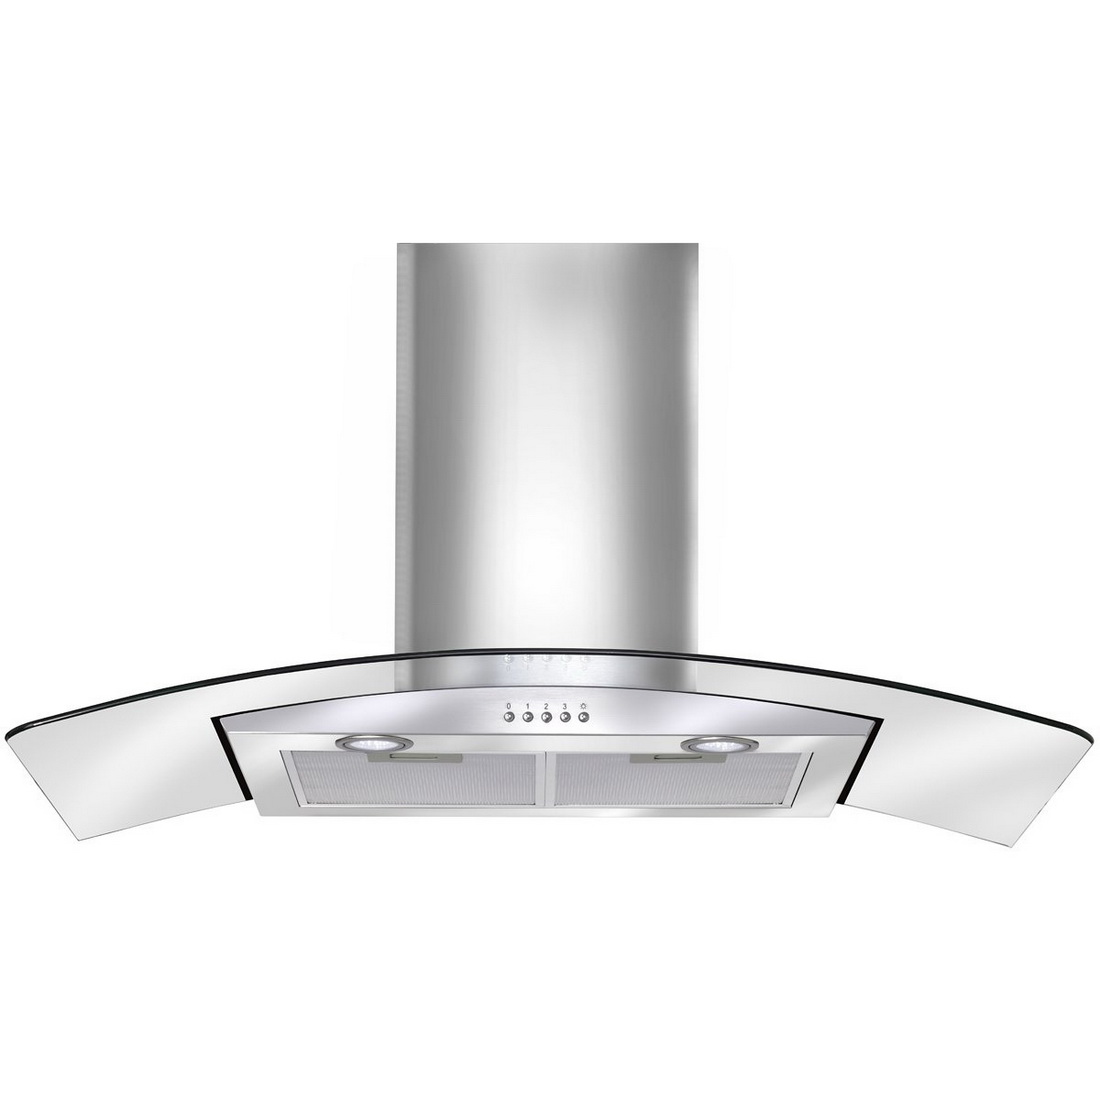 Canopy Wall Mount Rangehood With Glass 90cm Stainless Steel ACG900X